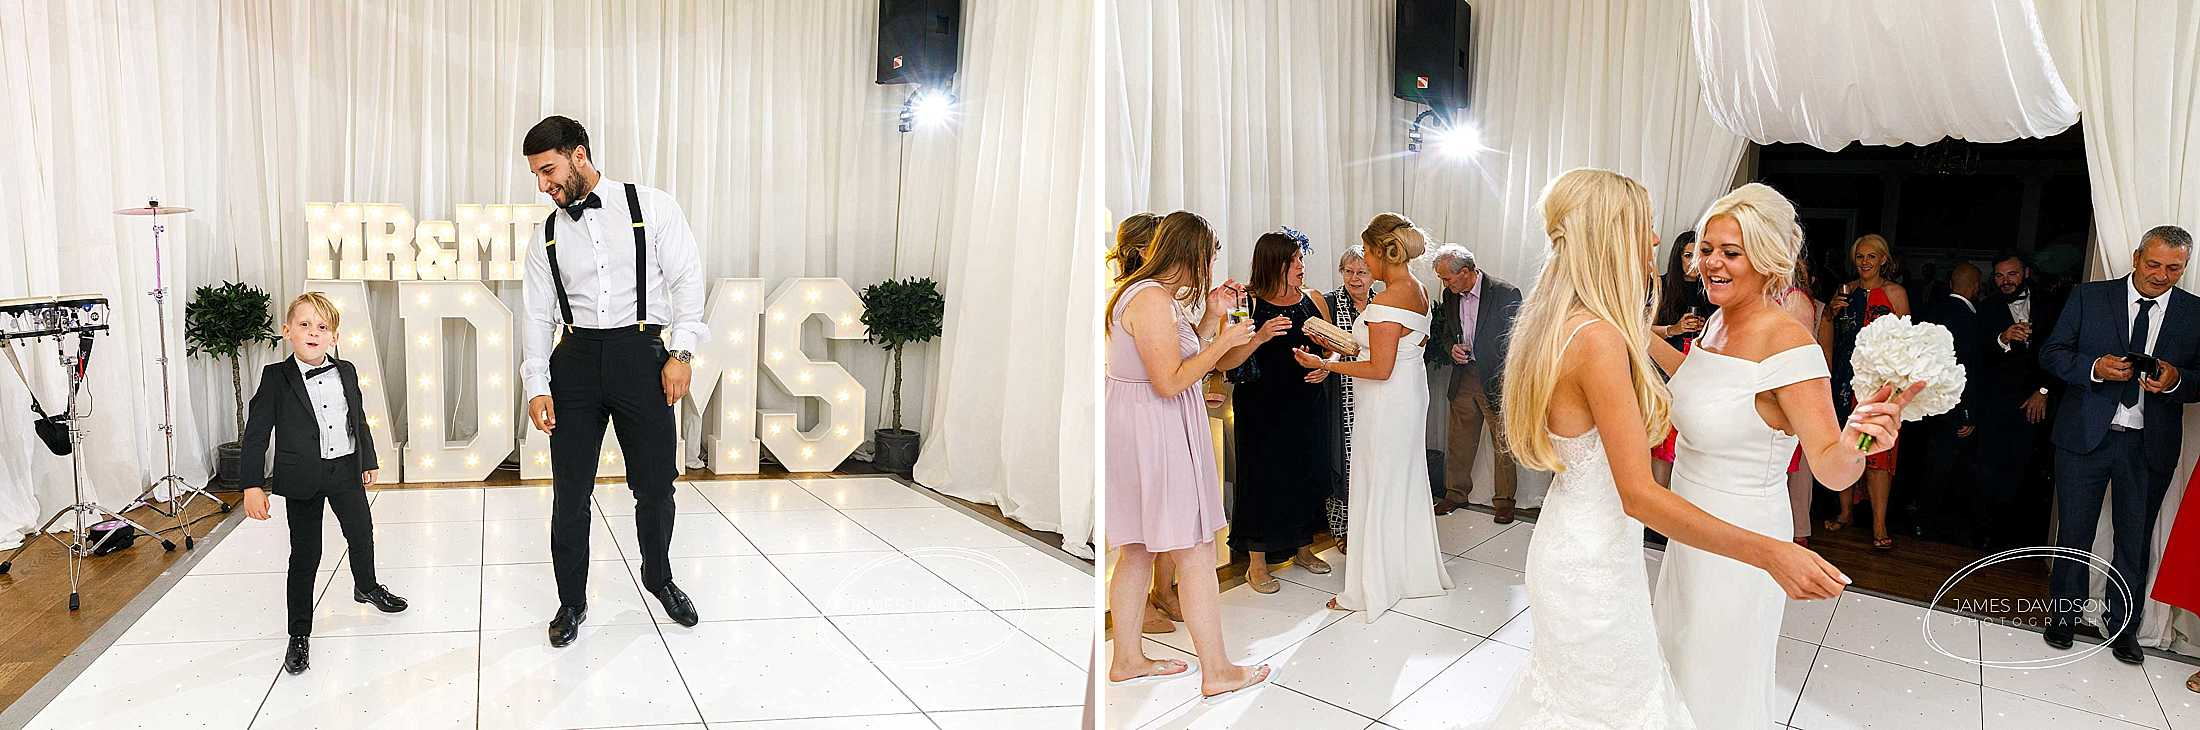 gosfield-hall-wedding-photography-153